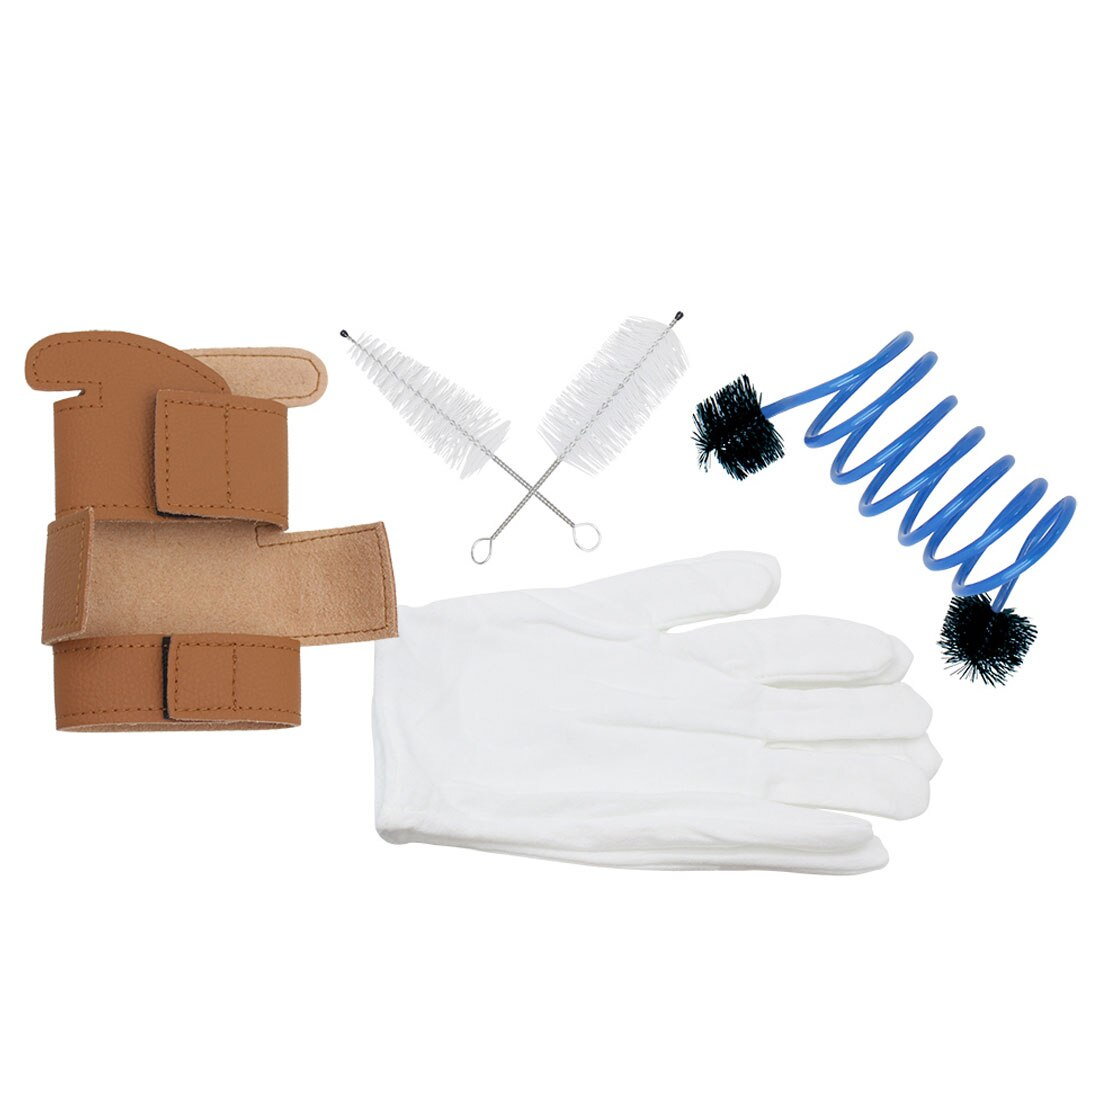 Trumpet Gloves + Cleaning Kits + Protective Cover Case Synthetic Leather Woodwind Cleaning Tools Accessories